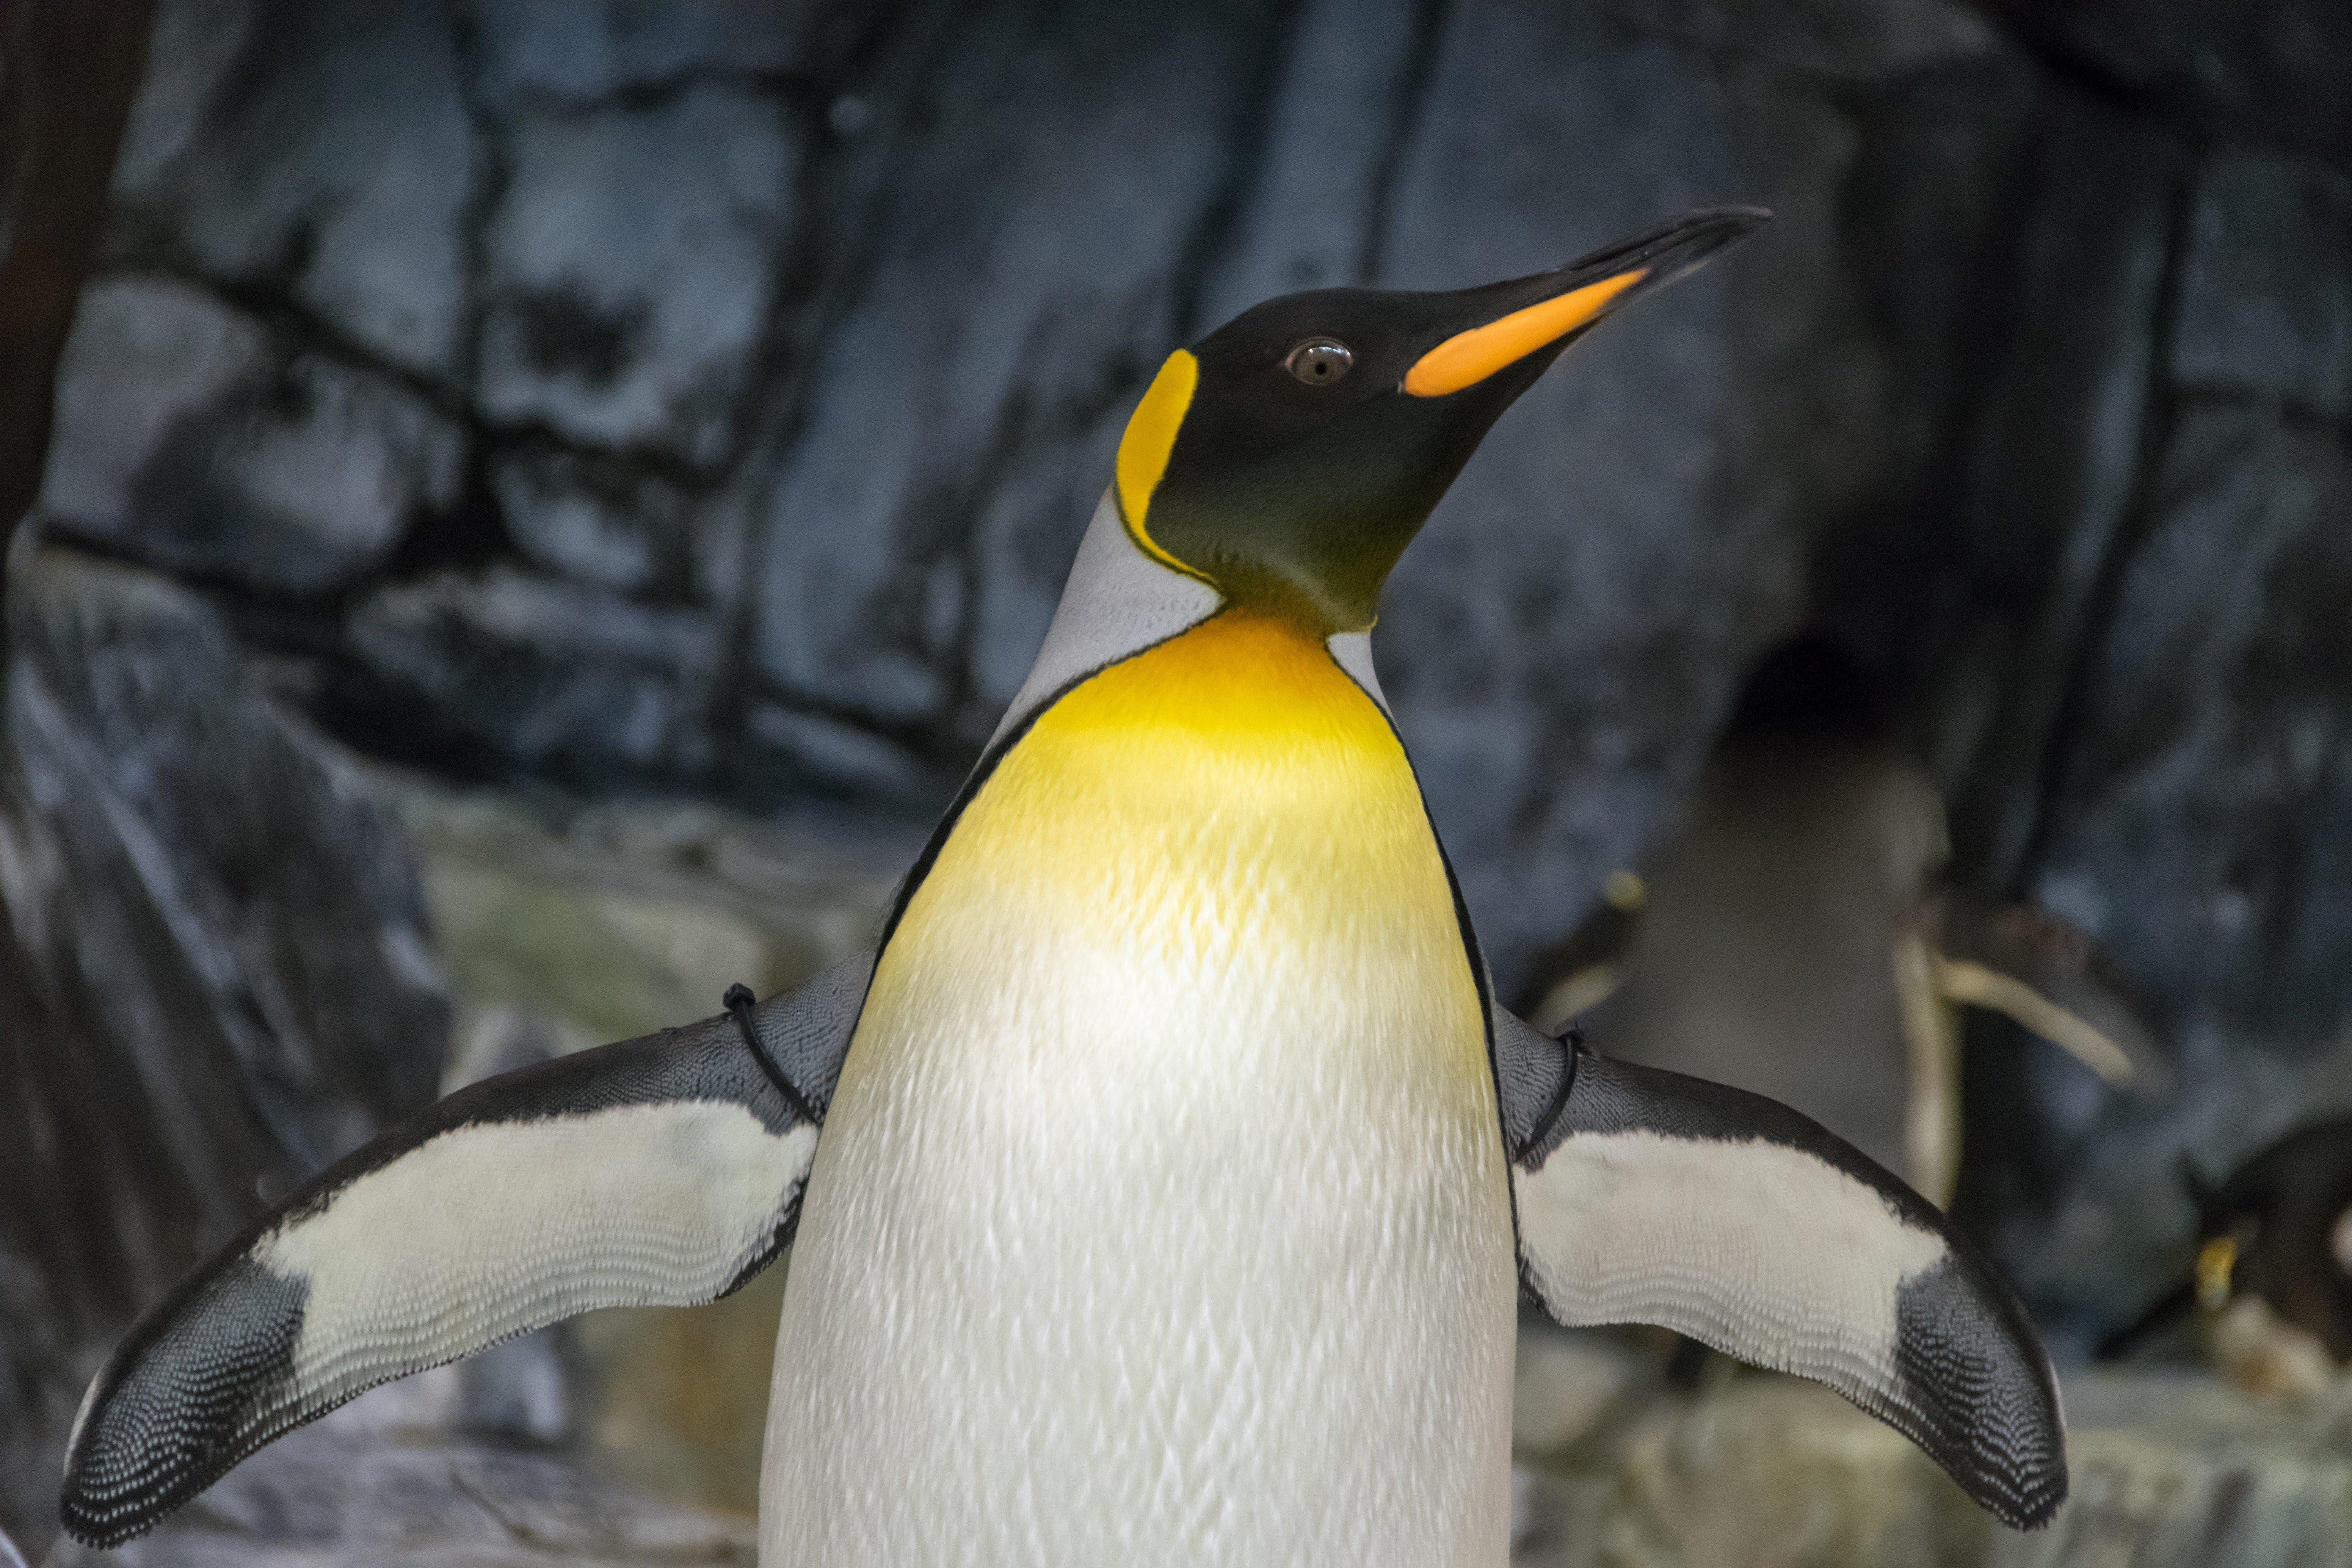 A yellow and black penguin. | Photo: Pexels/ Uncoated